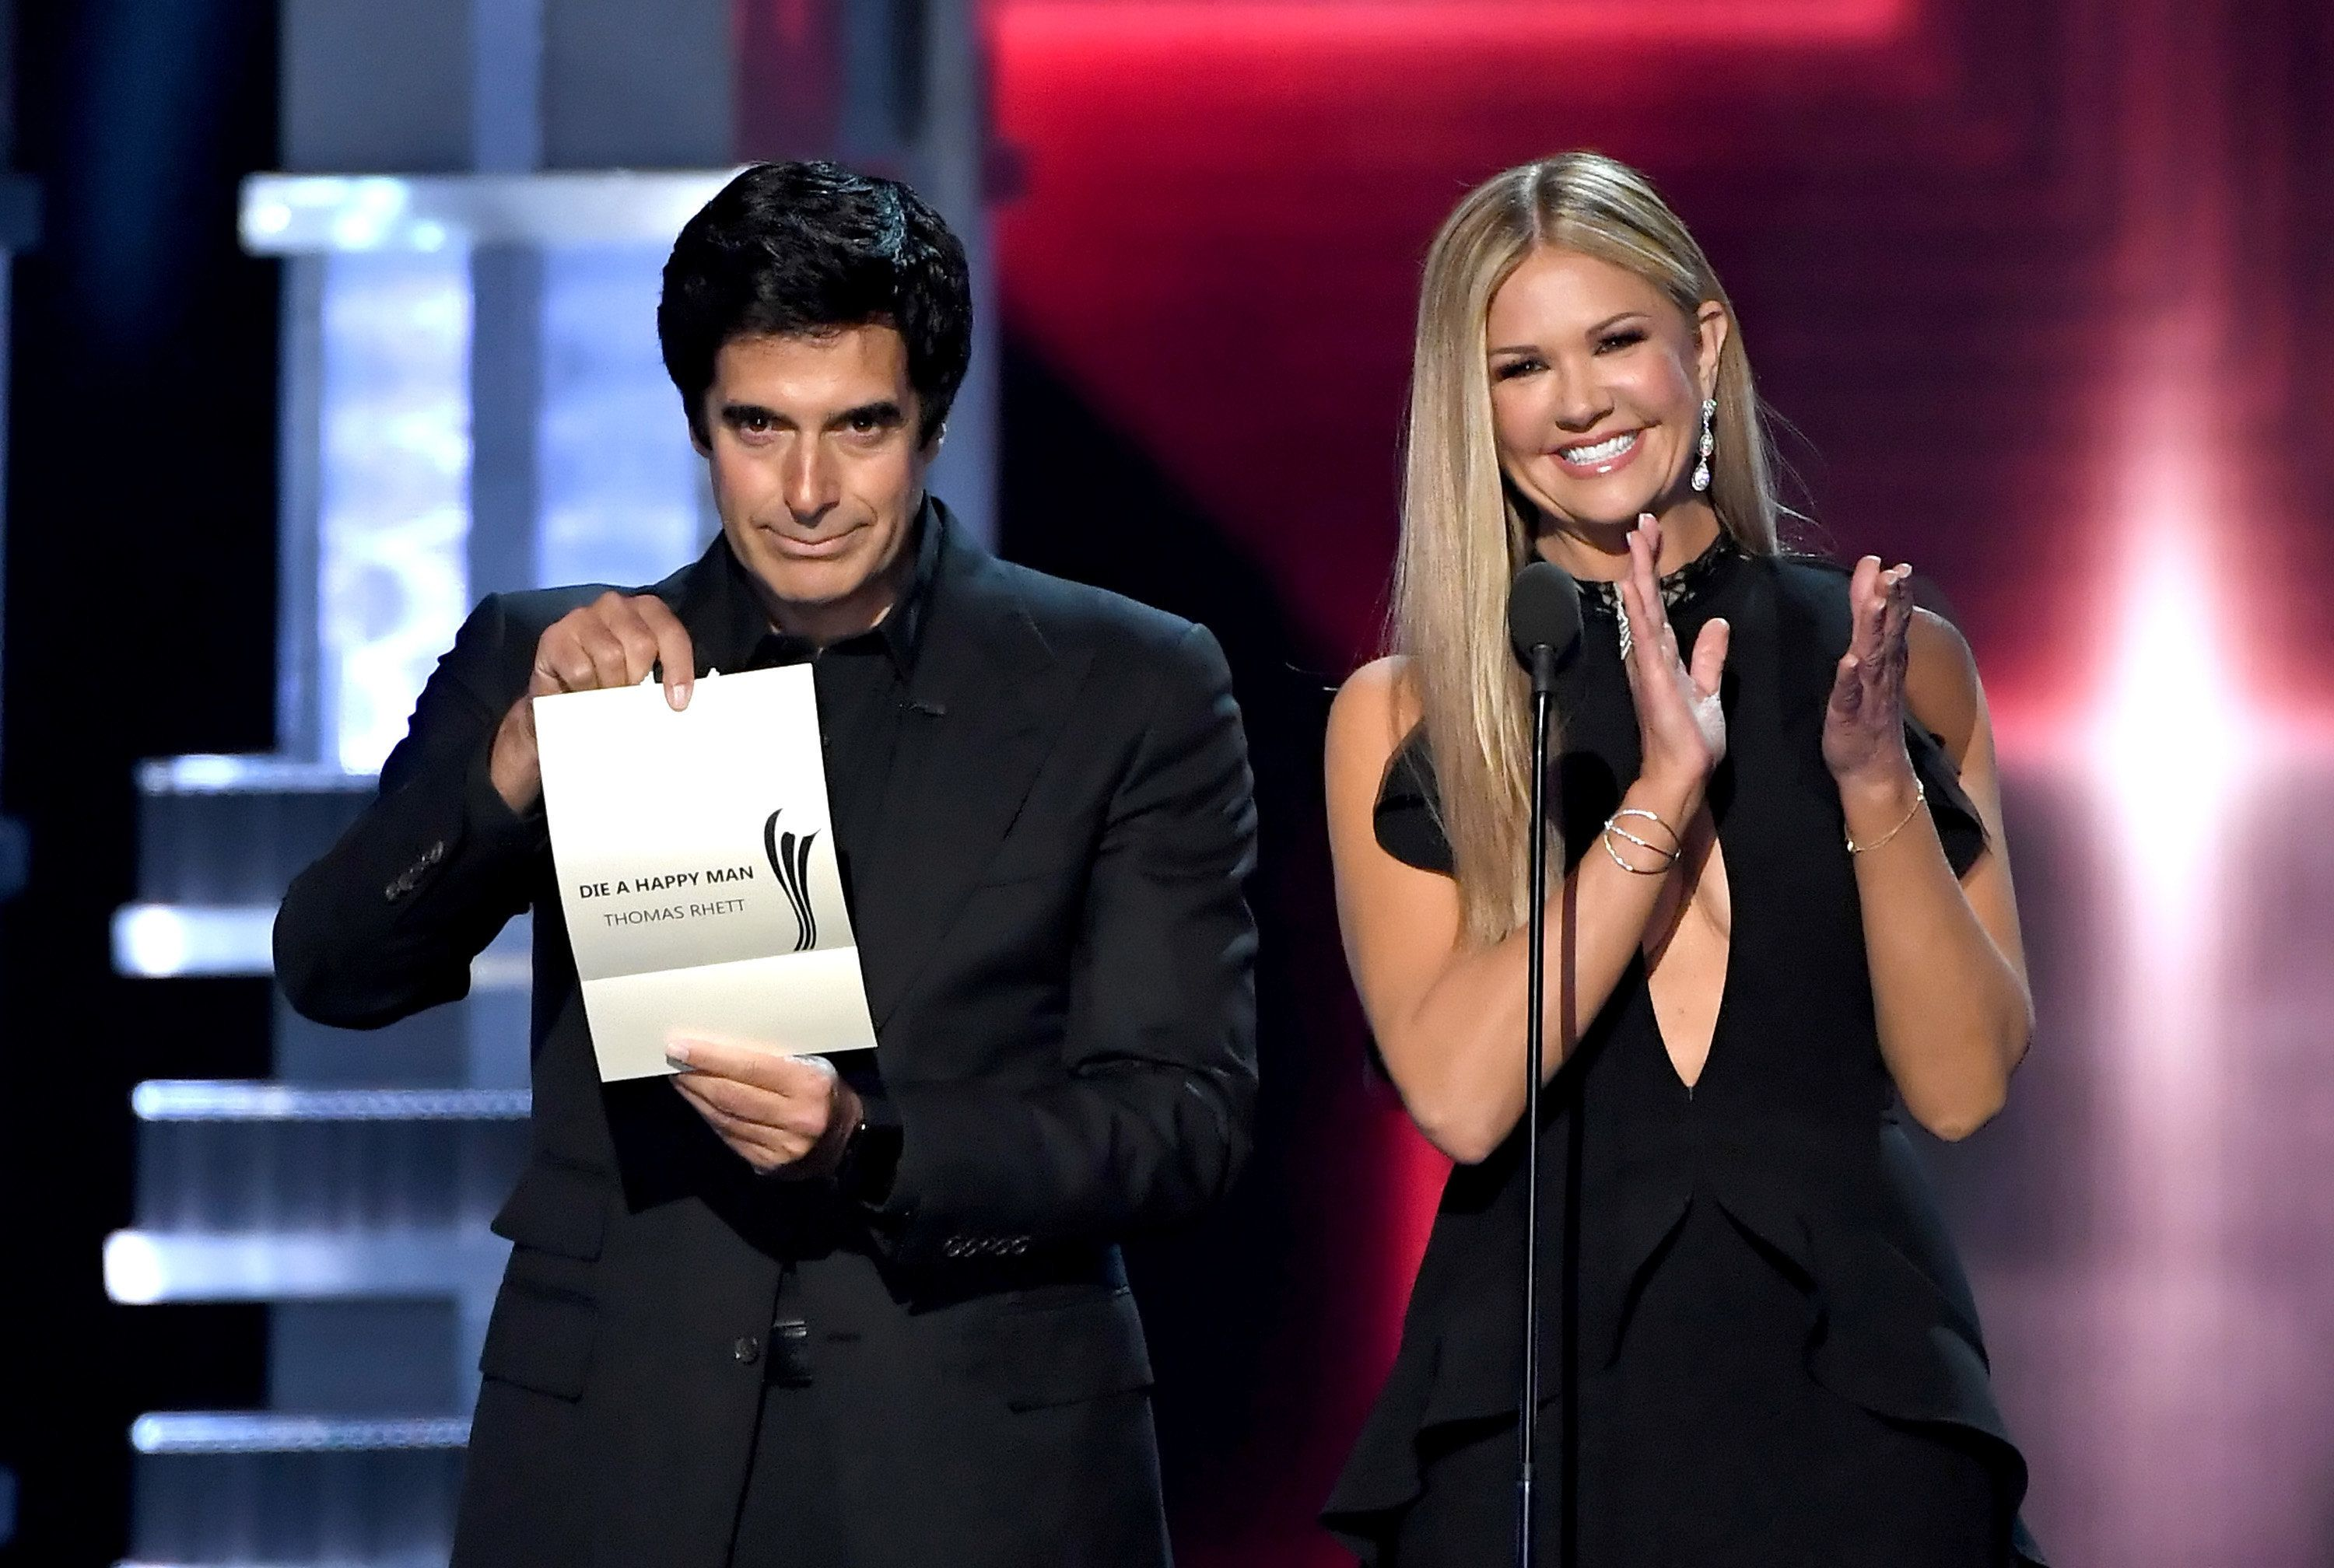 LAS VEGAS, NV - APRIL 02:  Illusionist David Copperfield (L) and TV personality Nancy O'Dell speak onstage during the 52nd Academy Of Country Music Awards at T-Mobile Arena on April 2, 2017 in Las Vegas, Nevada.  (Photo by Ethan Miller/Getty Images)